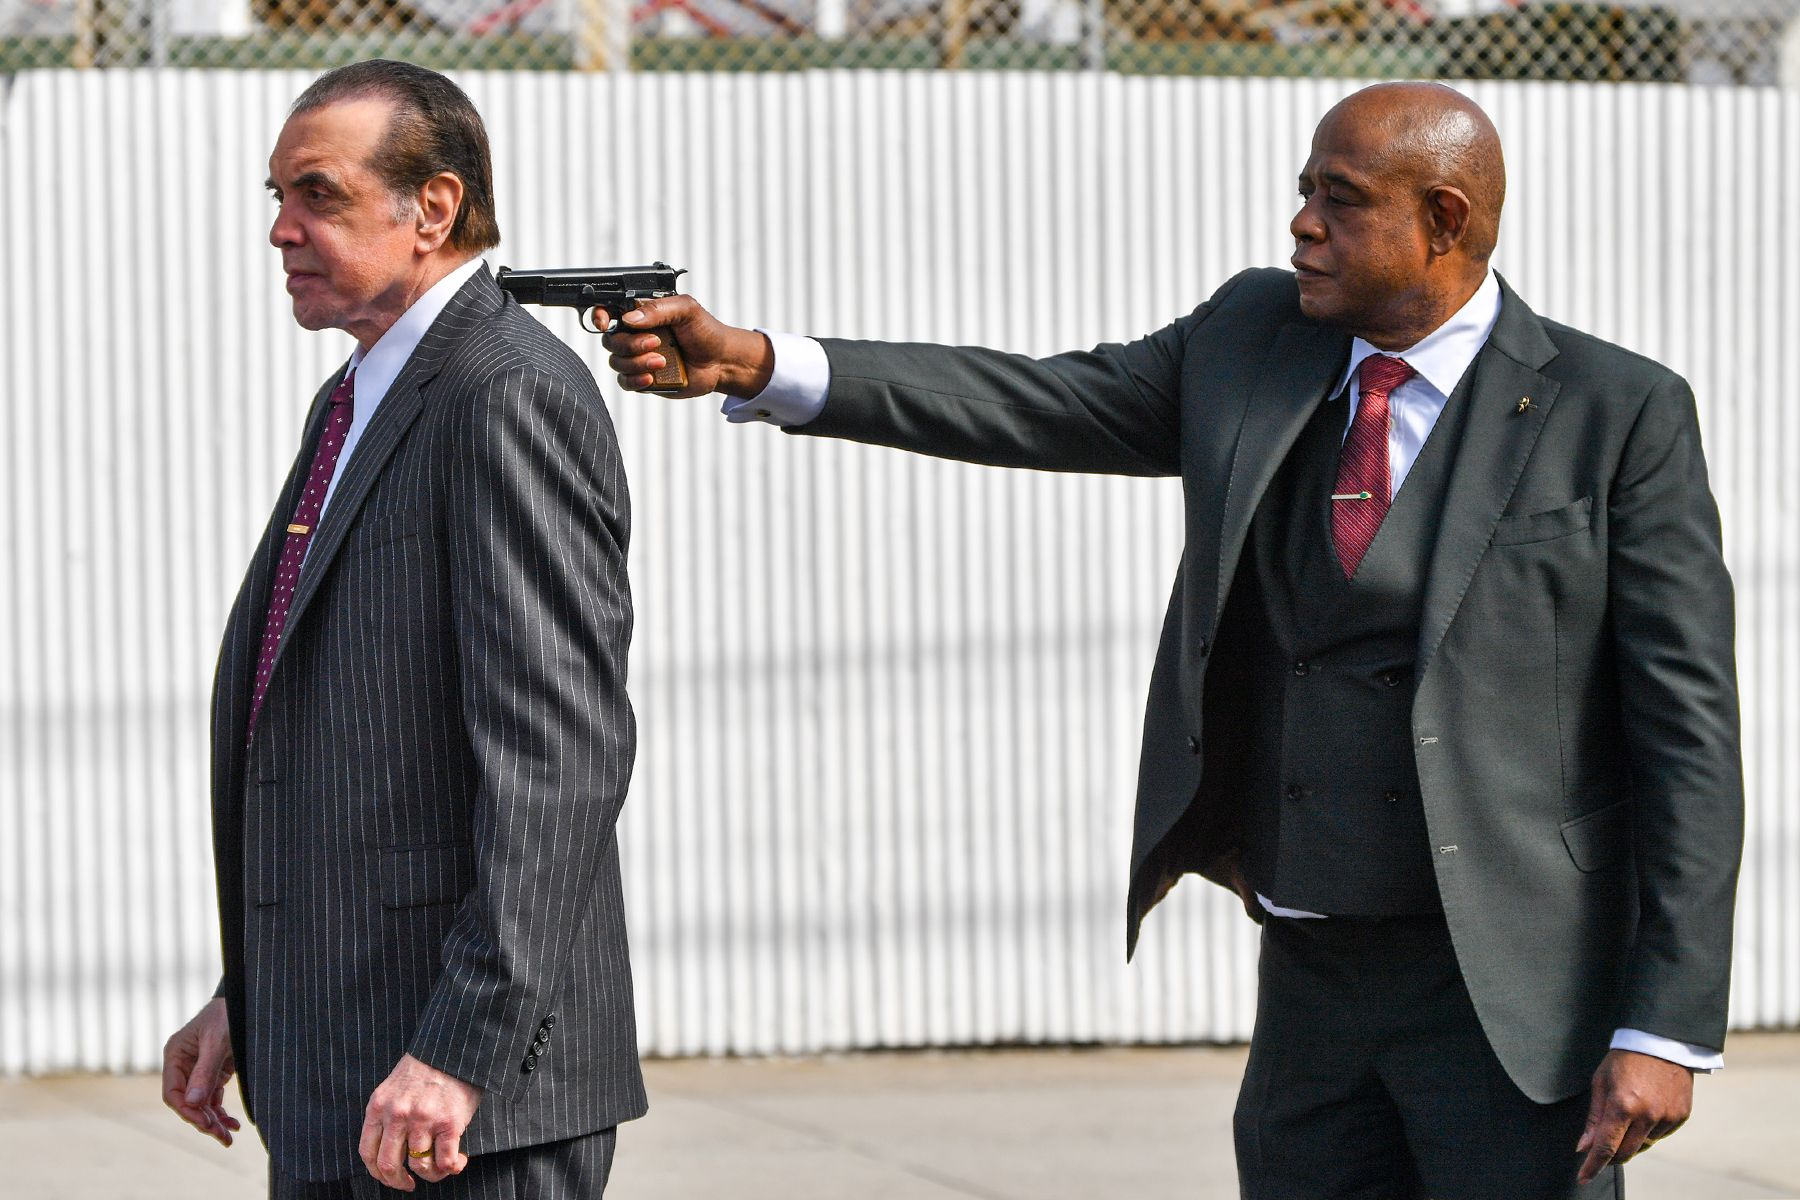 Forest Whitaker and Chazz Palminteri